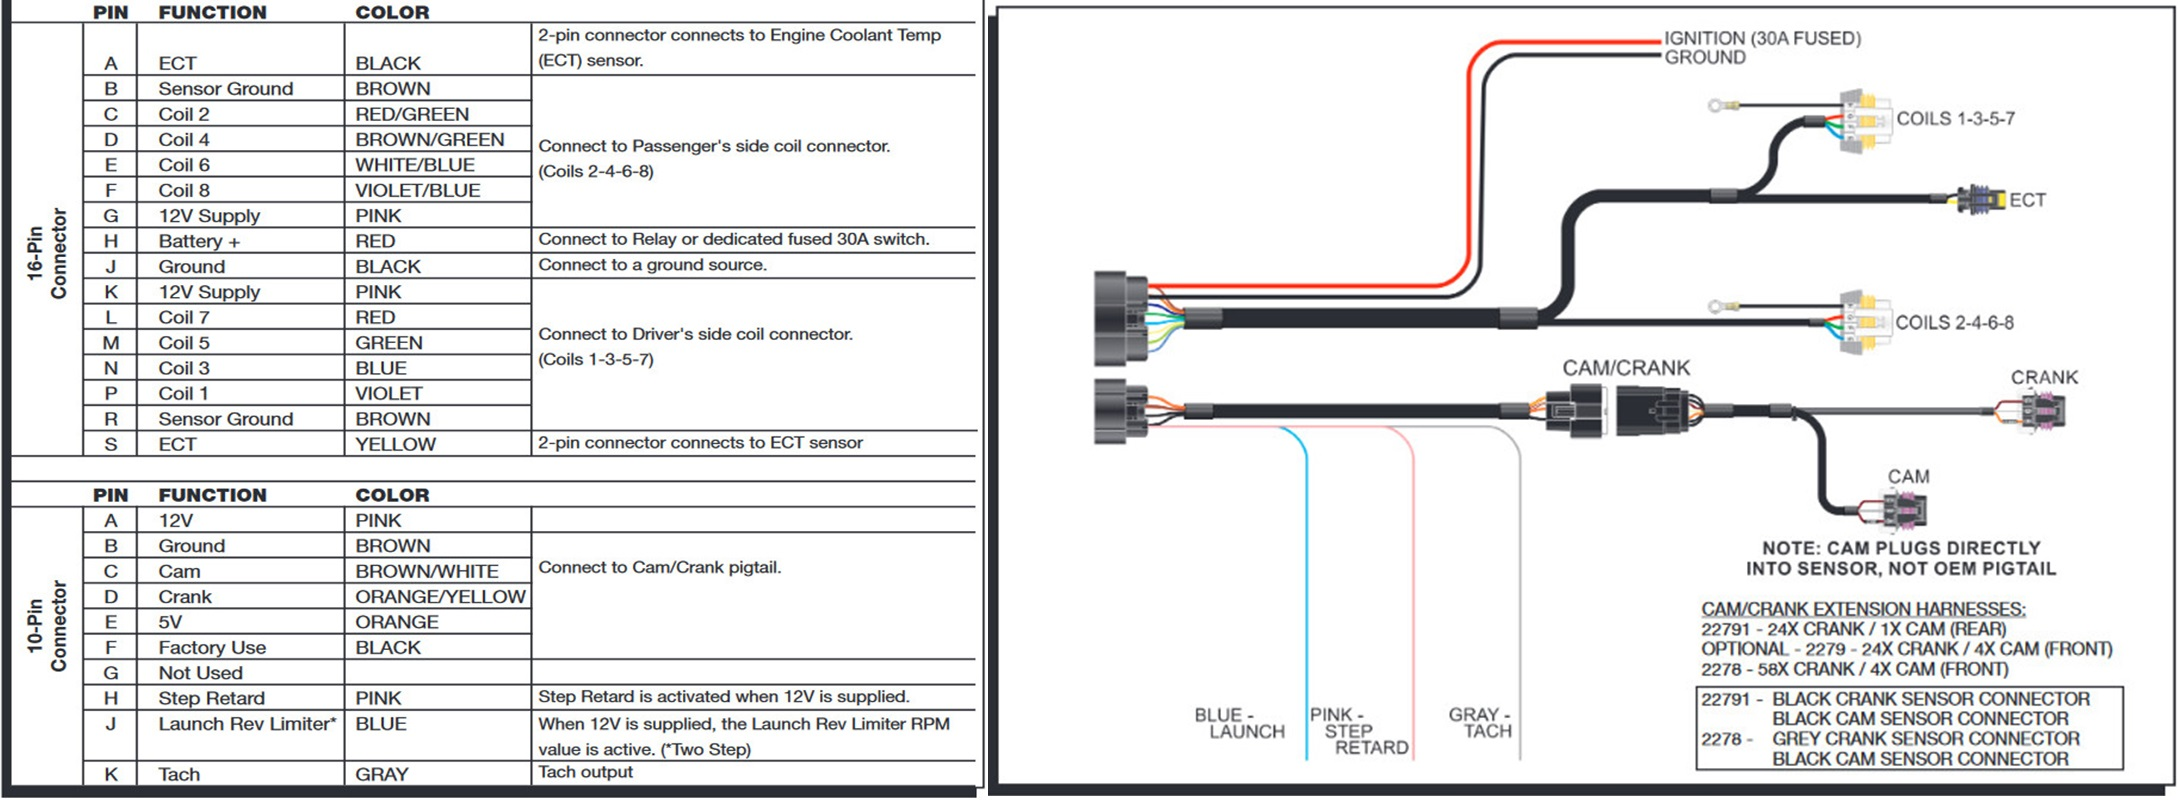 Msd Wiring Diagram For A System Will Be Ditch Witch Performance Introduces Ignition Boxes Designed Russell